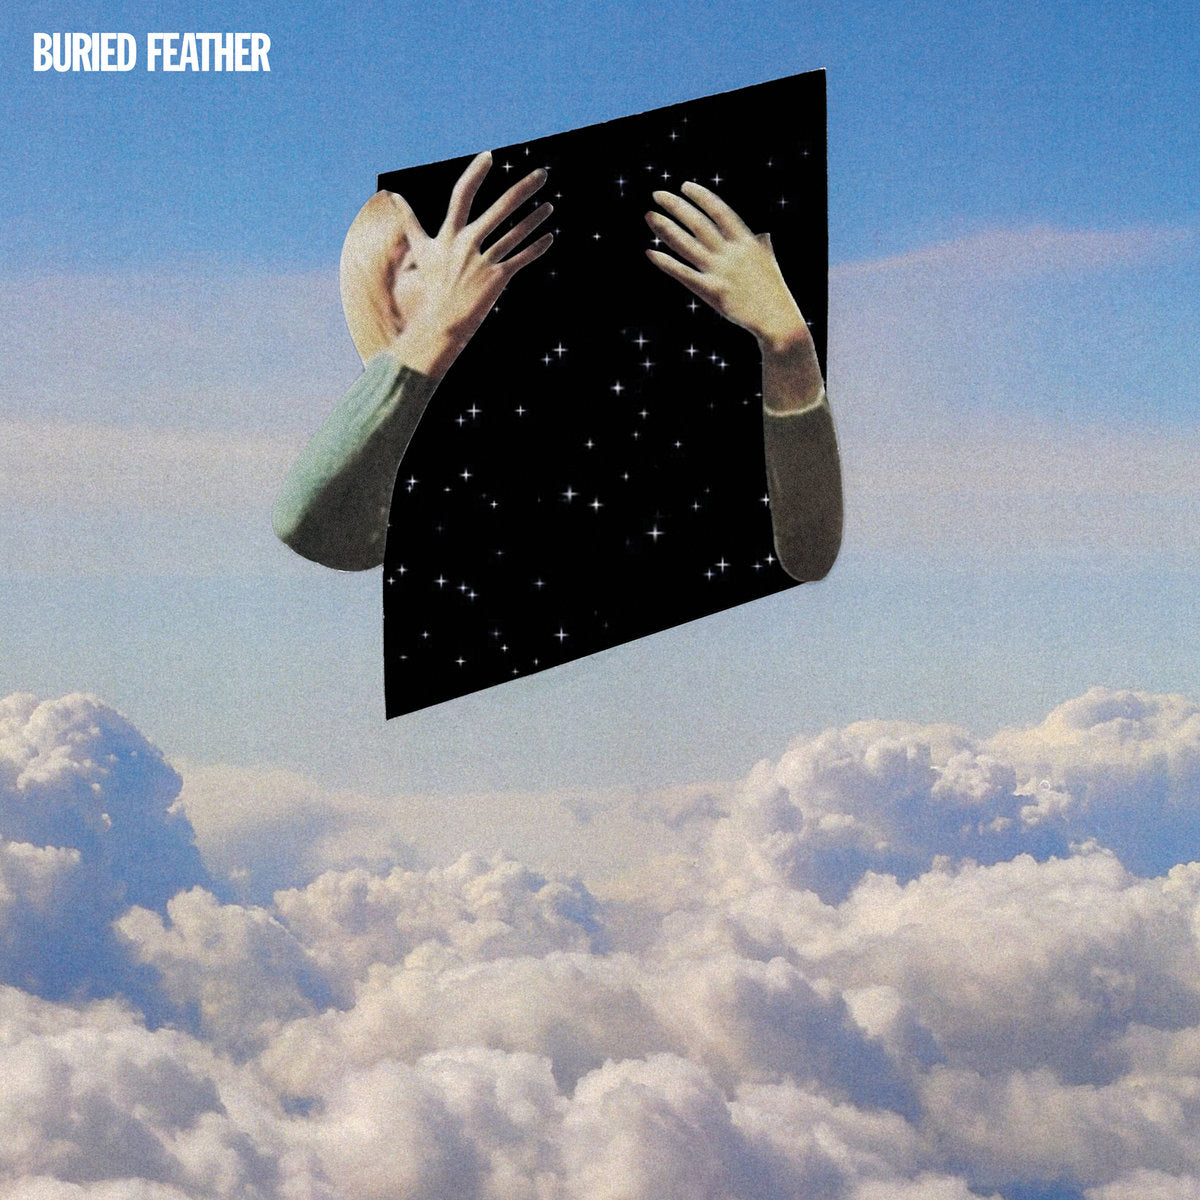 Buried Feather ‎– Buried Feather